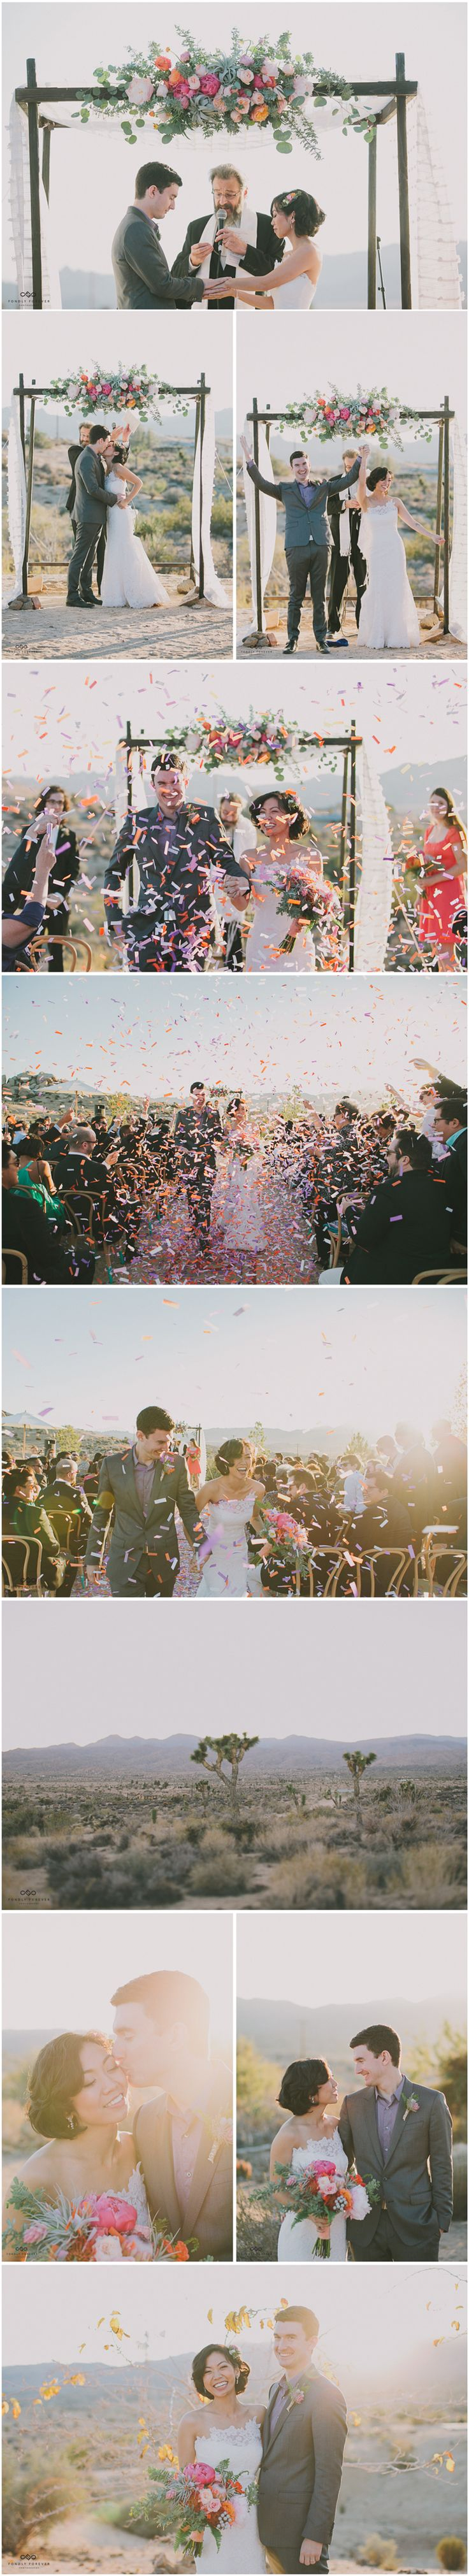 Beautiful florals on the chuppah and a fun confetti ceremony exit.